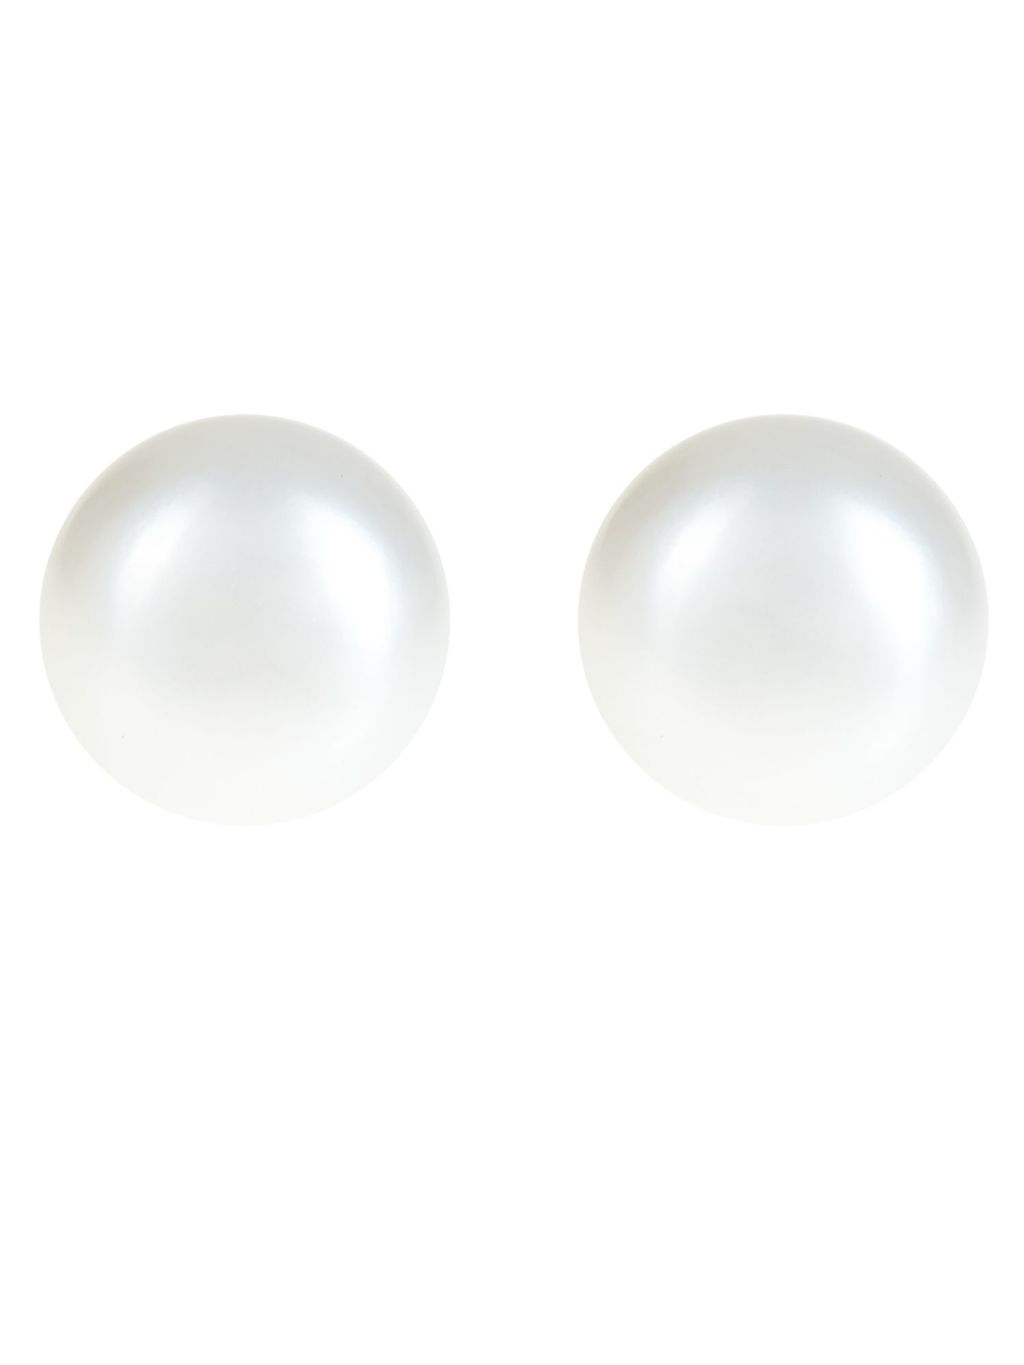 Pearl Stud Earrings, White - predominant colour: ivory/cream; occasions: evening; style: stud; length: short; size: small/fine; material: plastic/rubber; fastening: pierced; finish: metallic; embellishment: pearls; season: a/w 2016; wardrobe: event